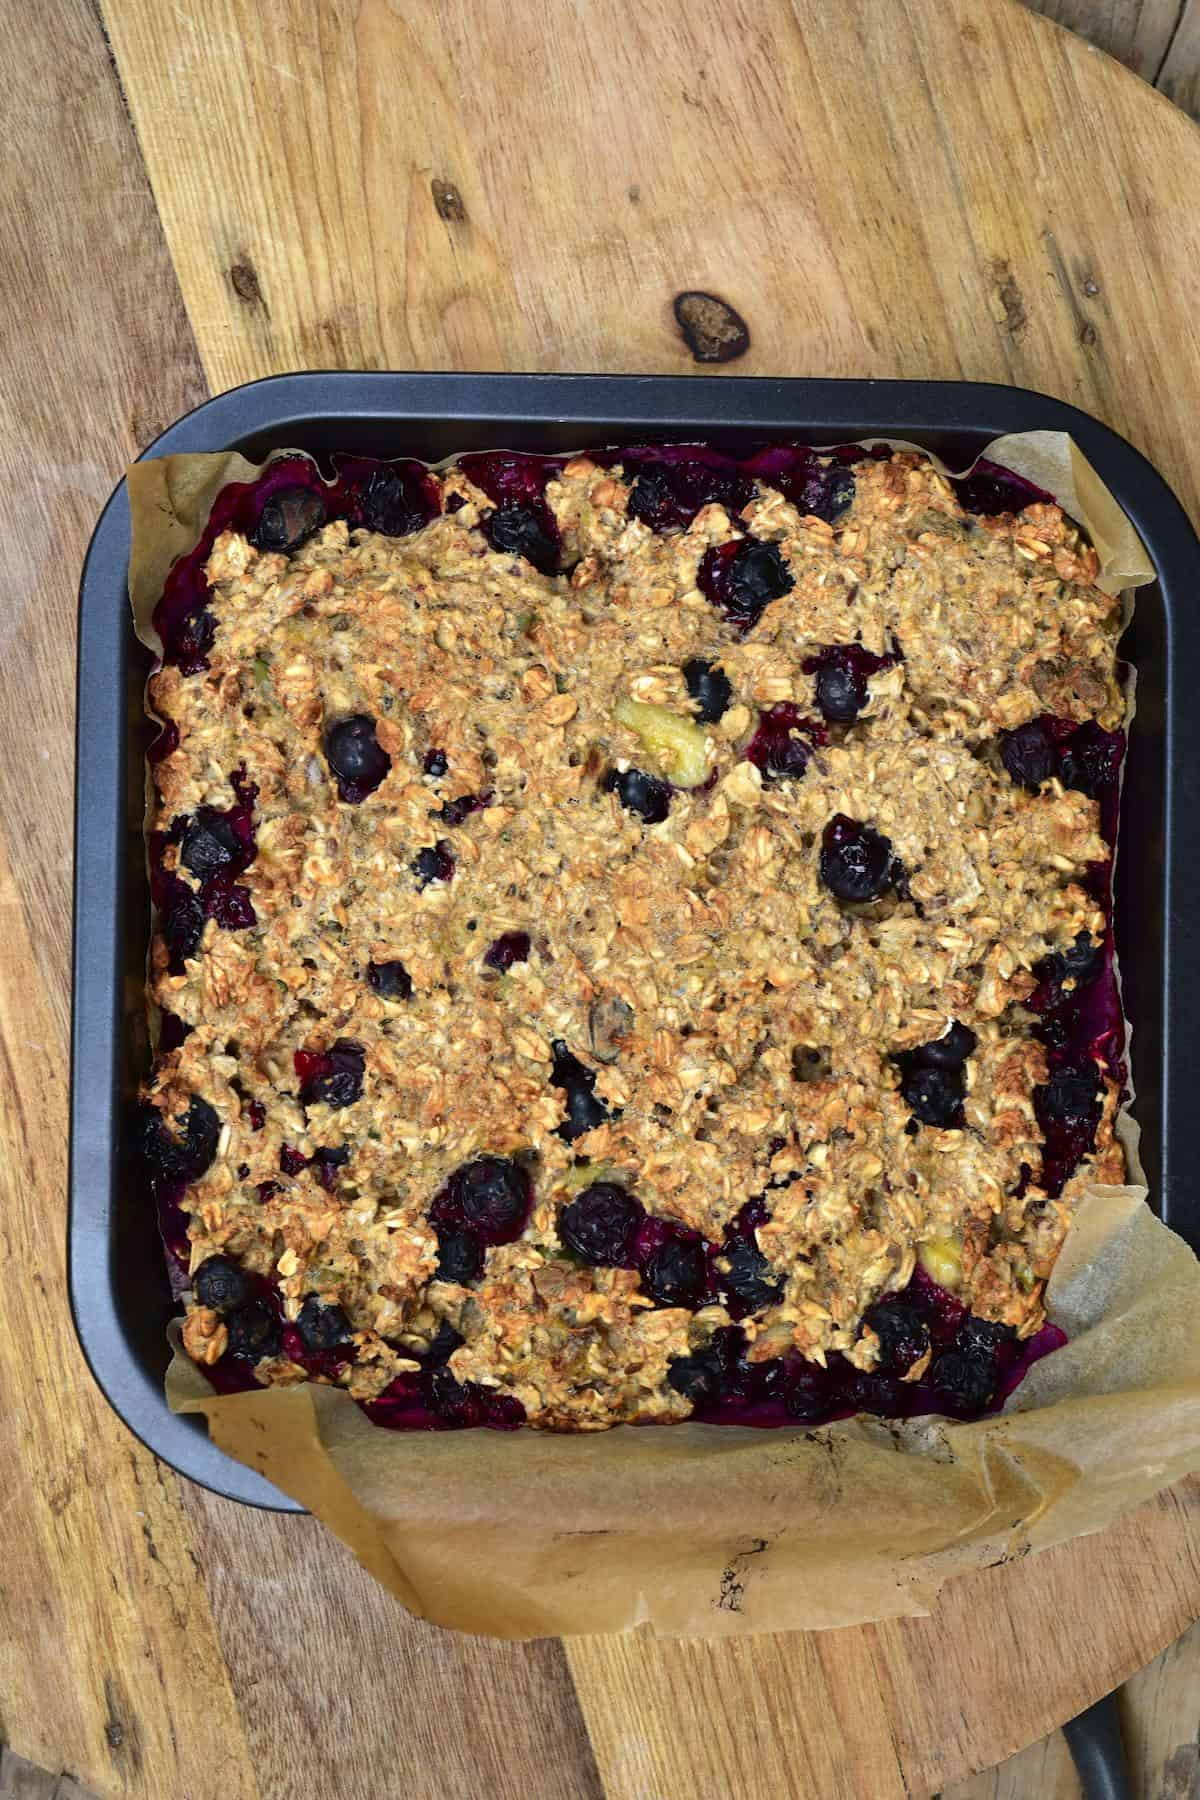 Baked blueberry oats in a baking tray